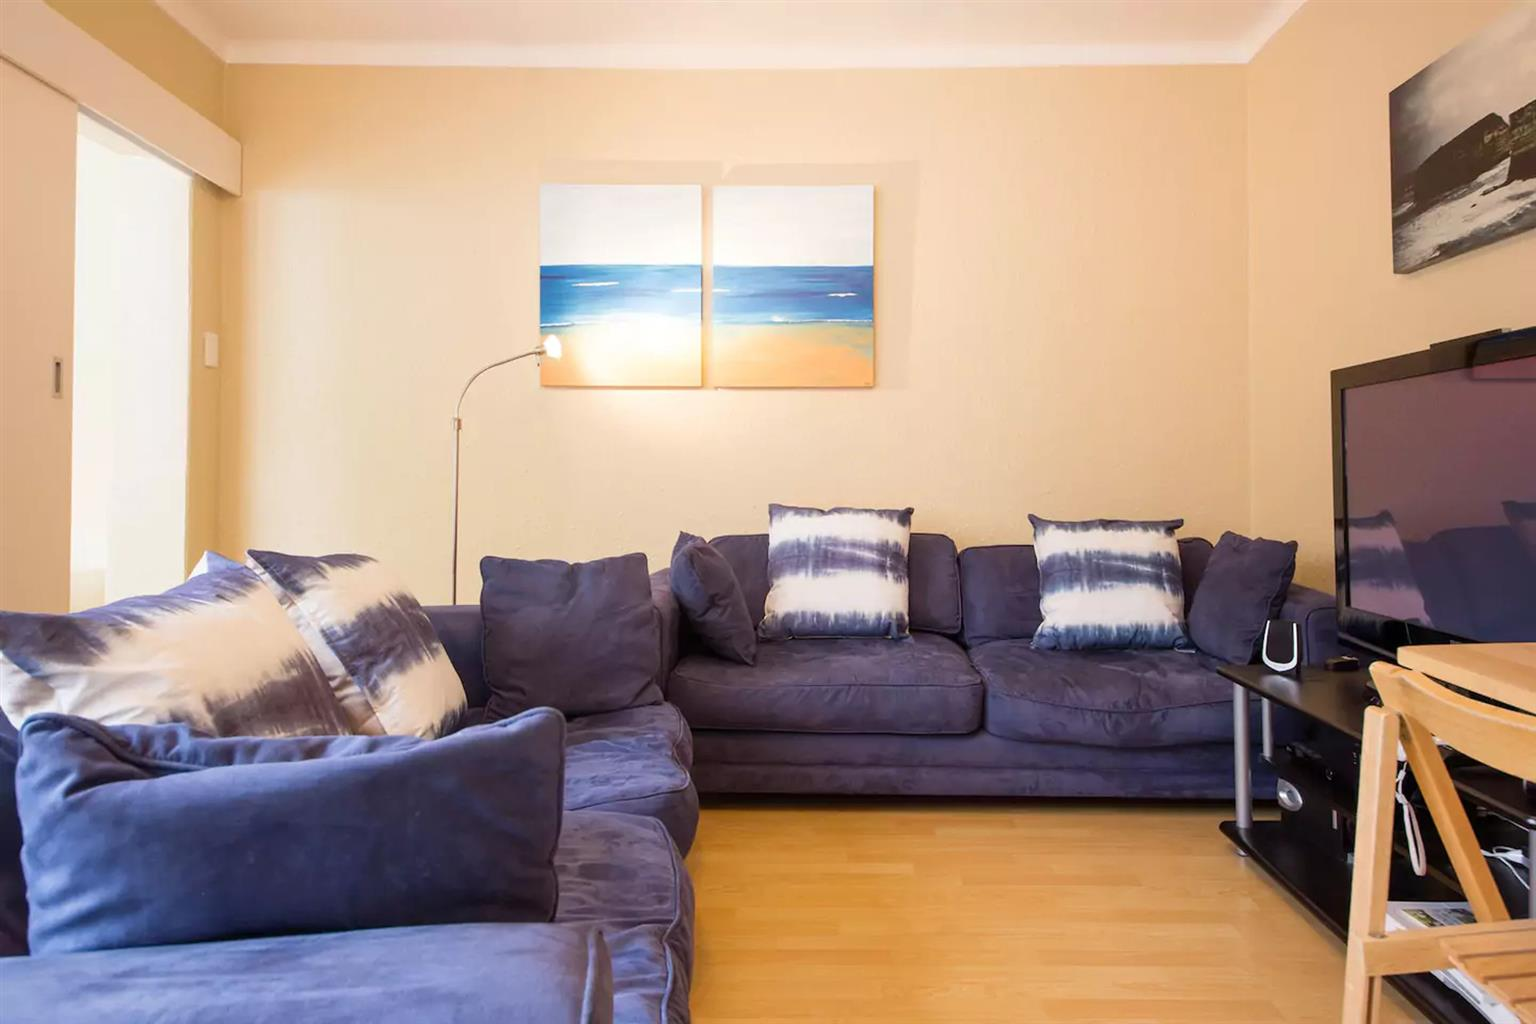 Upmarket fully furnished 1 bedroom flat in Tamboerskloof: Modern, secure and fully equipped - move in with just your clothes!